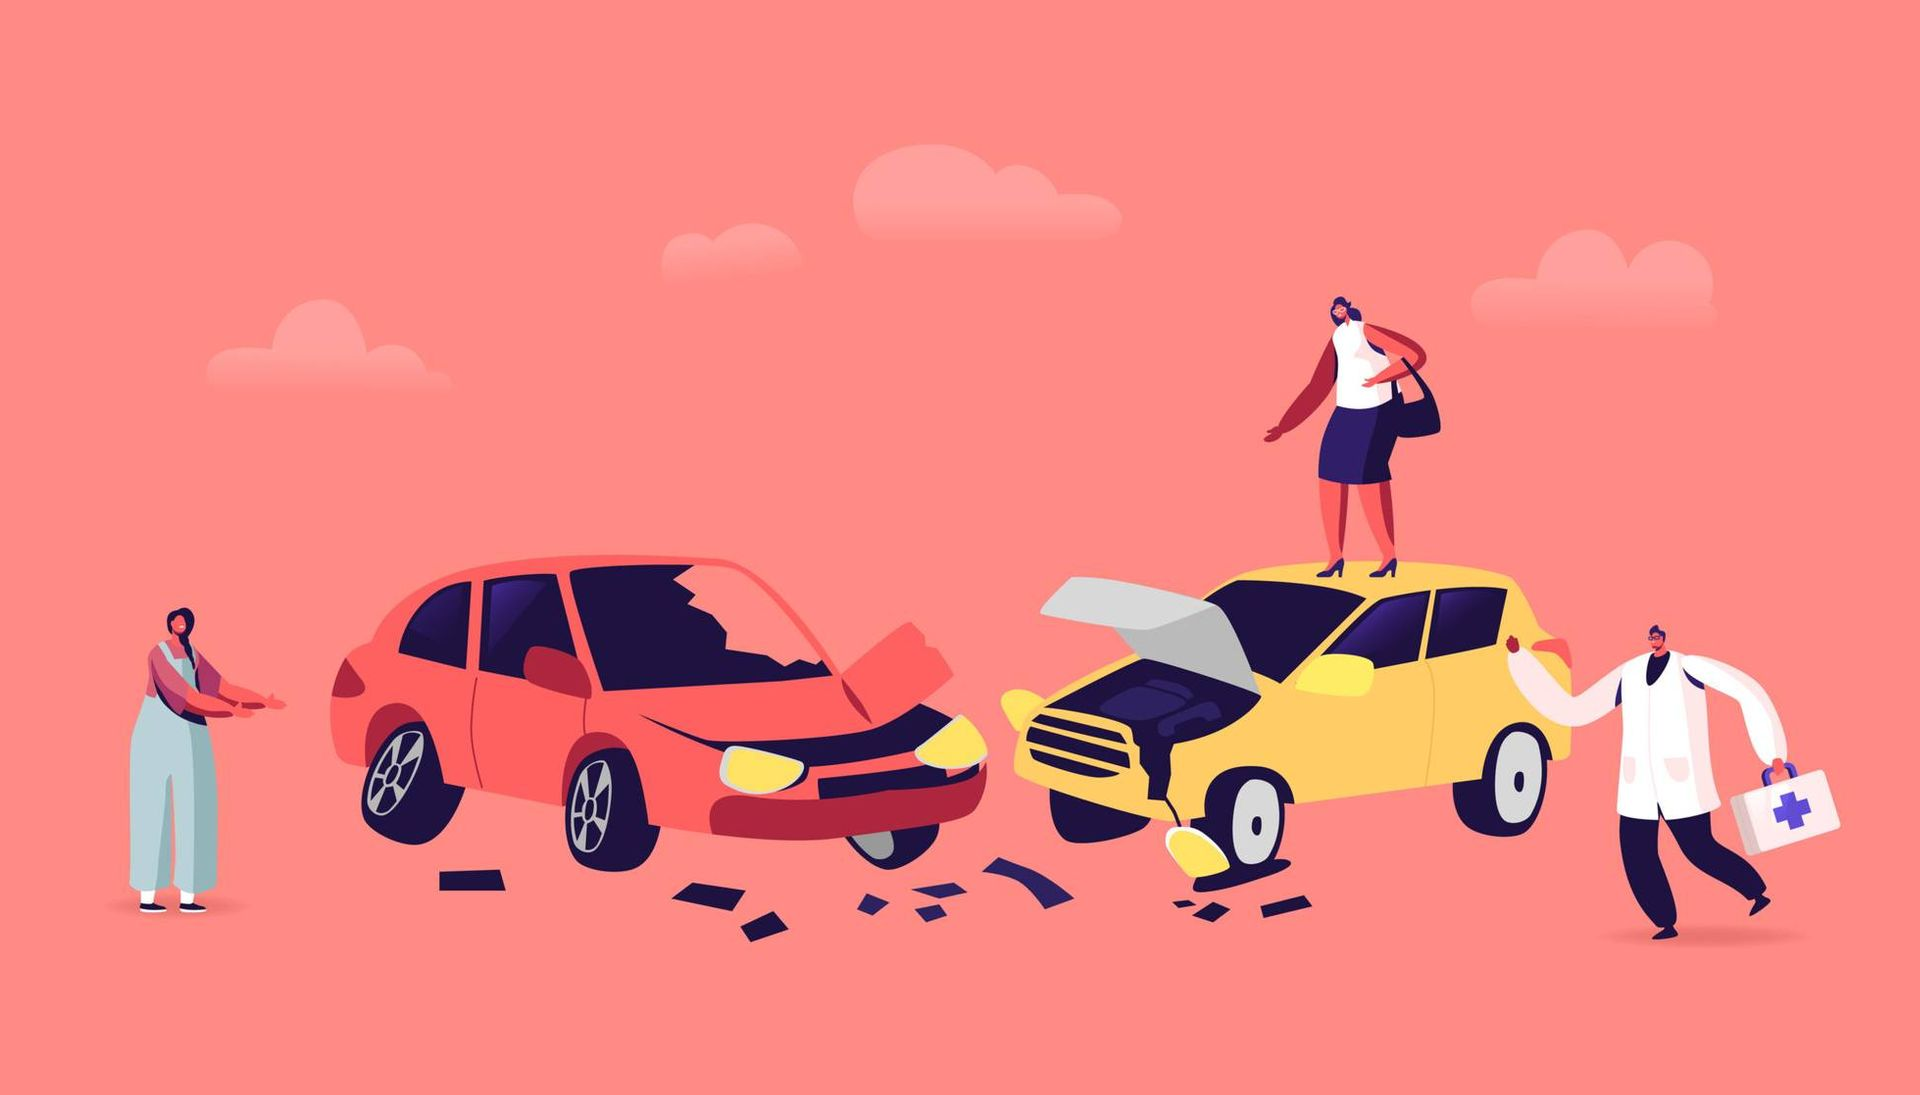 Illustration of a car accident with two drivers arguing about their damaged cars and a doctor running to the scene